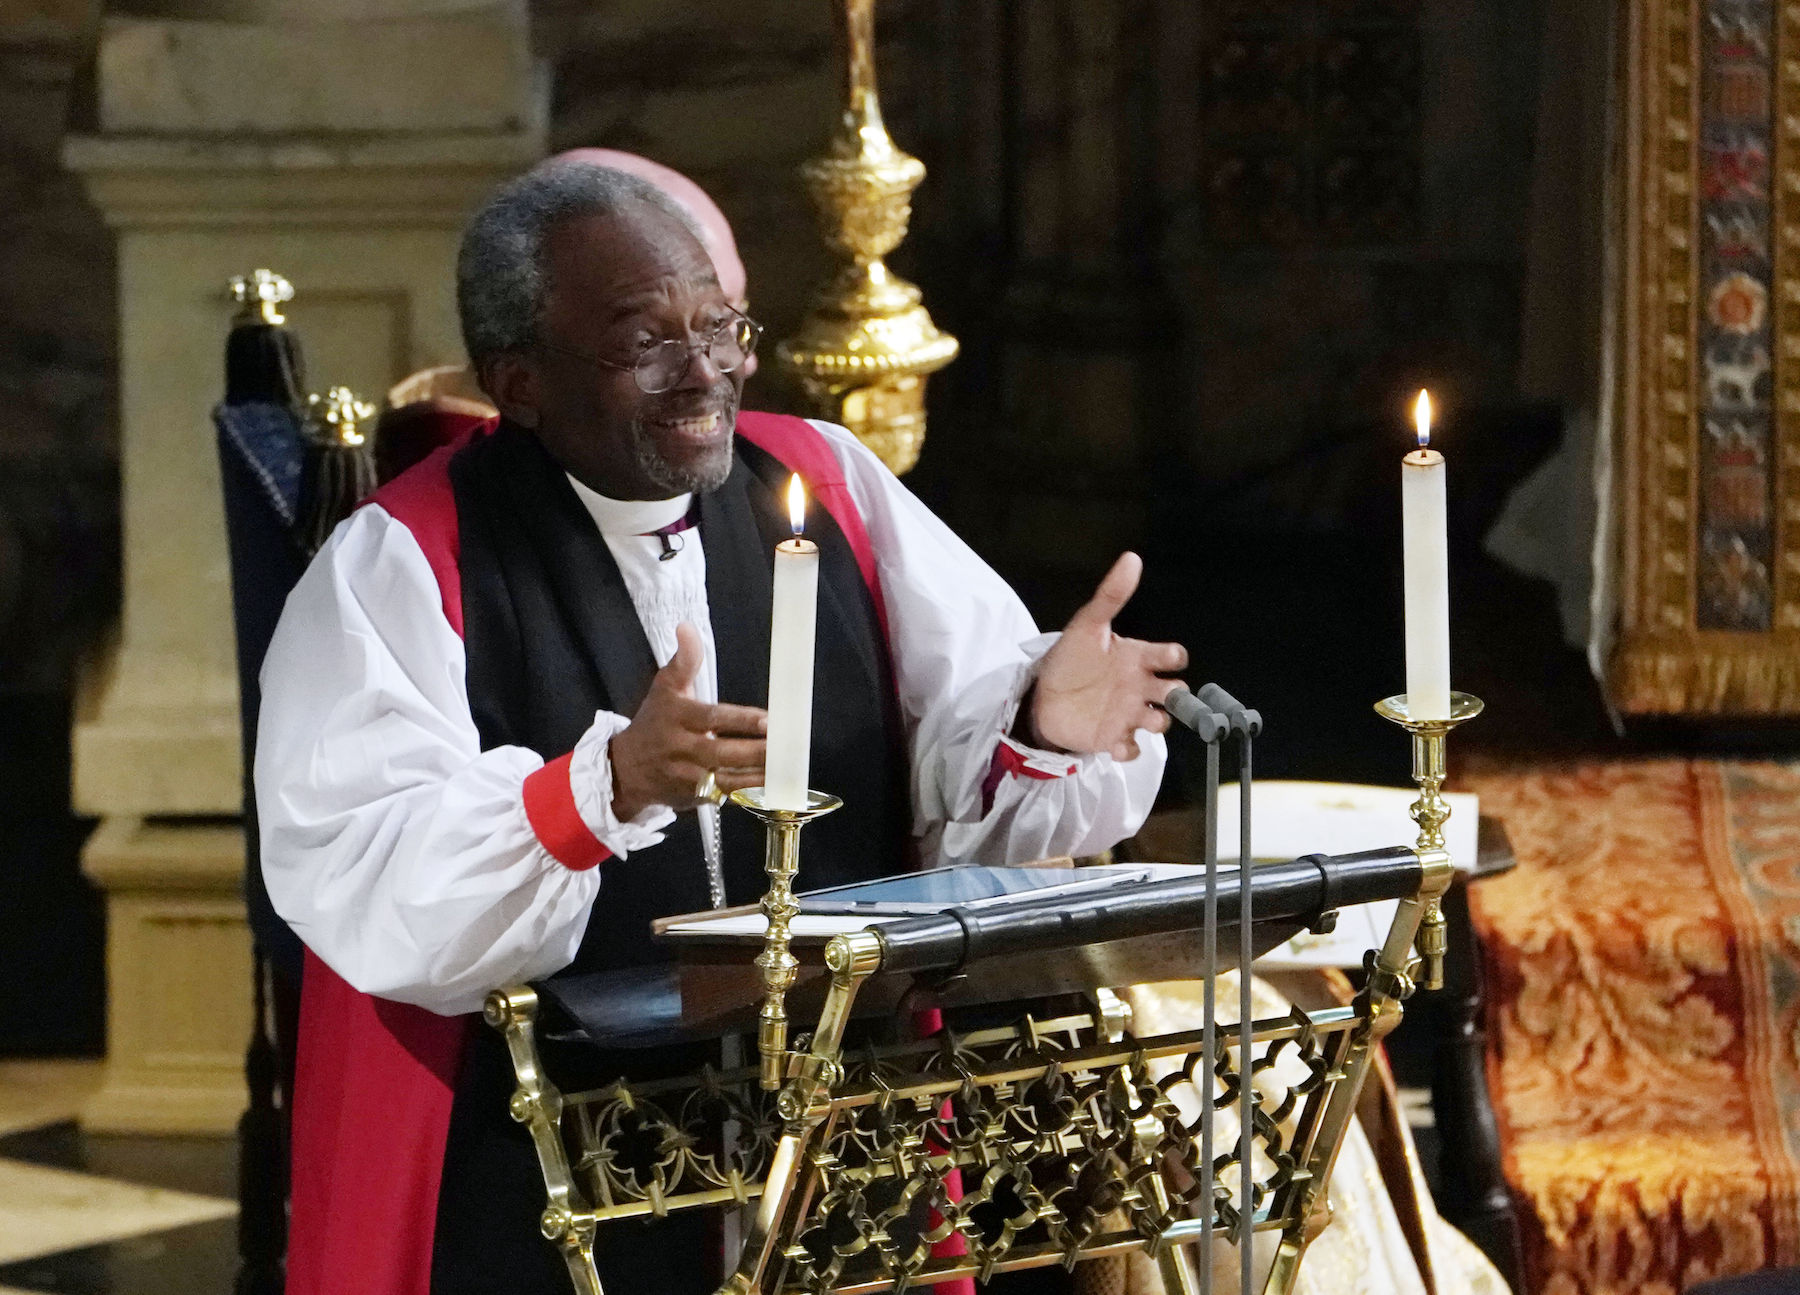 <div class='meta'><div class='origin-logo' data-origin='Creative Content'></div><span class='caption-text' data-credit='Owen Humphreys/AFP/Getty Images'>The Most Rev Bishop Michael Curry, primate of the Episcopal Church, gives an address during the wedding of Prince Harry and Meghan Markle.</span></div>